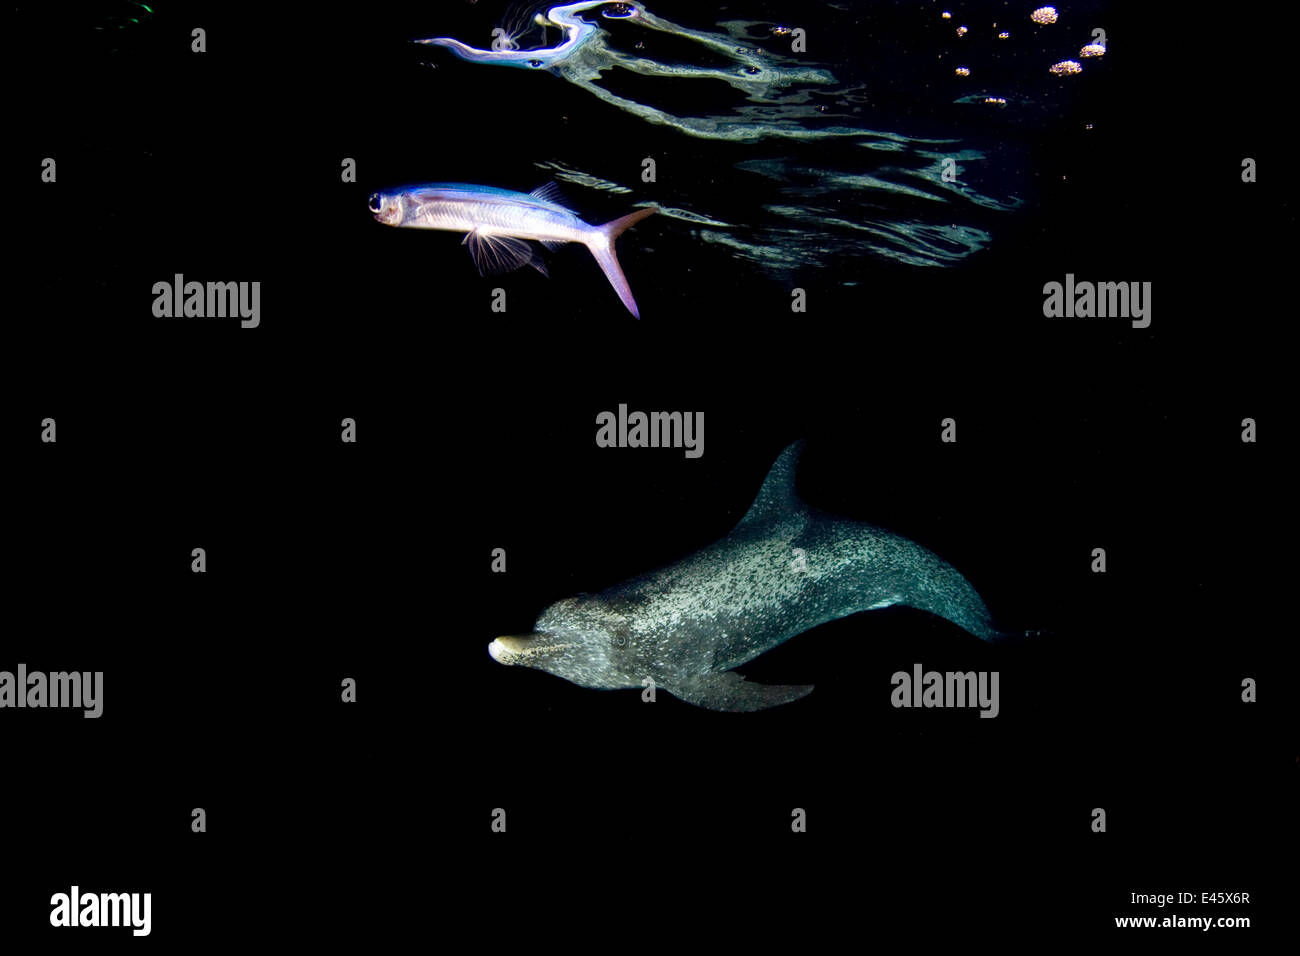 Atlantic spotted dolphin (Stenella frontalis) hunting a Flying fish (Hirundichthys affinis) at night in the Gulf Stock Photo